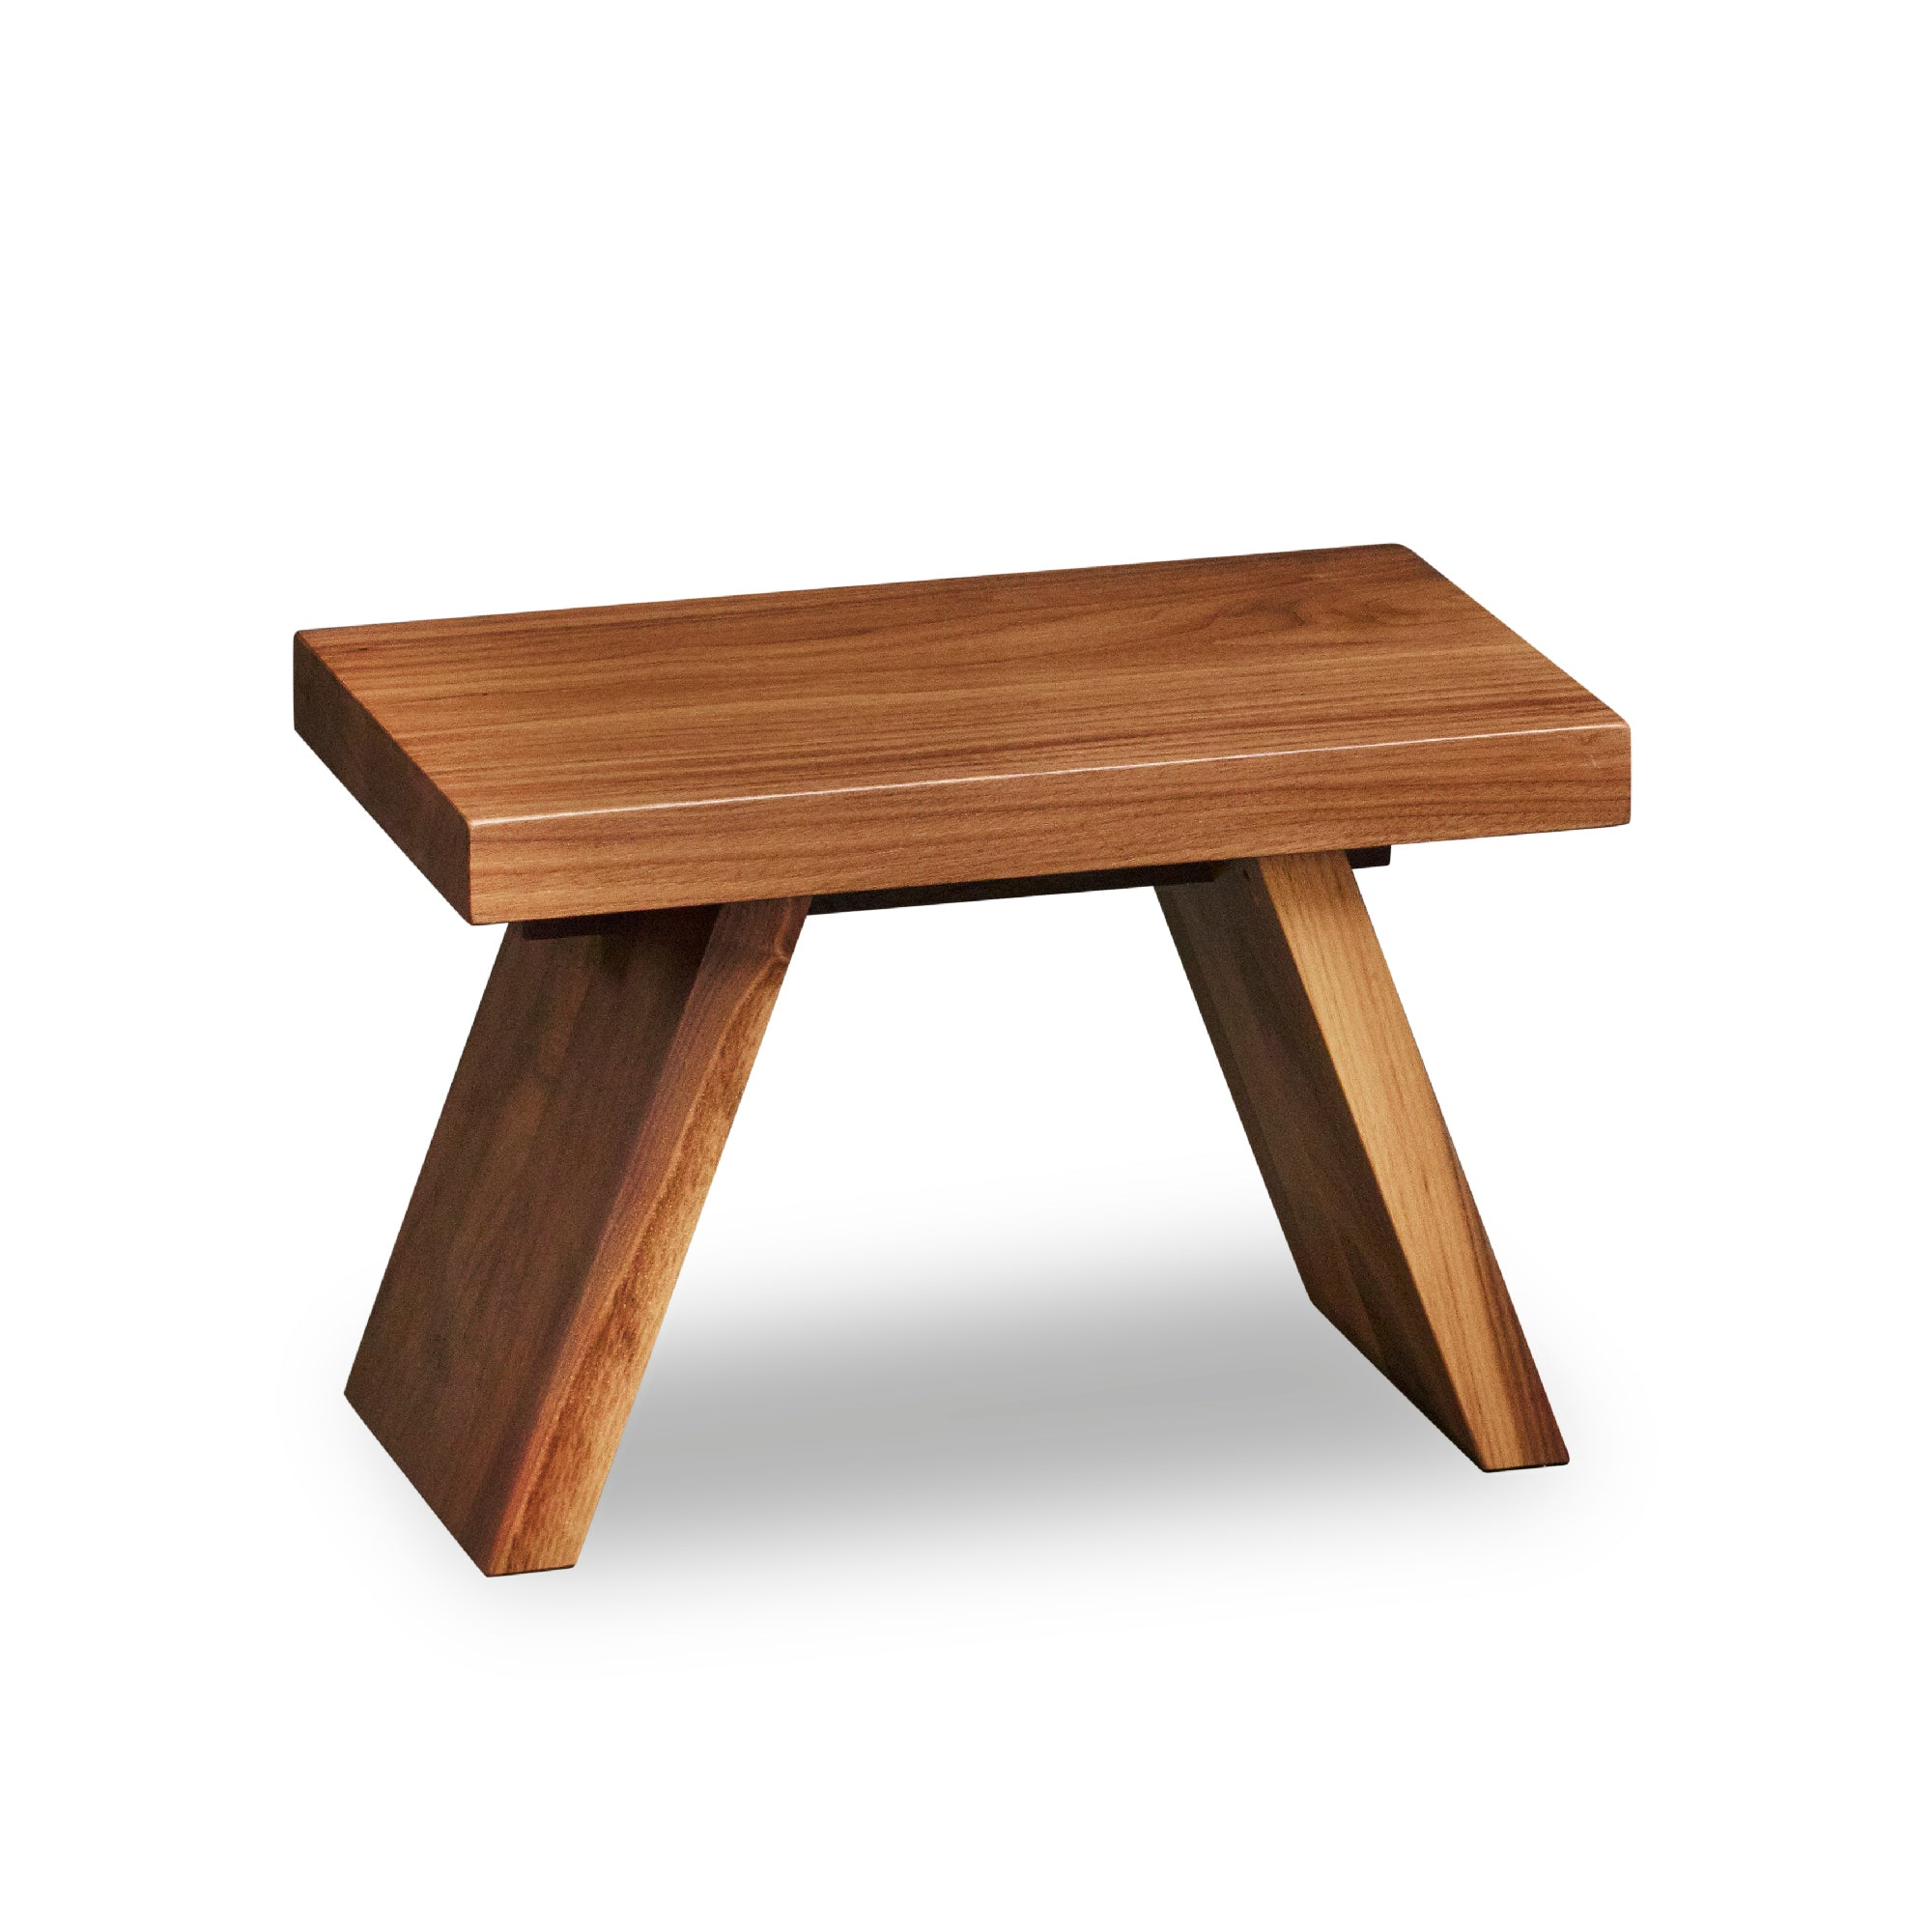 Solid walnut wood step stool with angled legs.